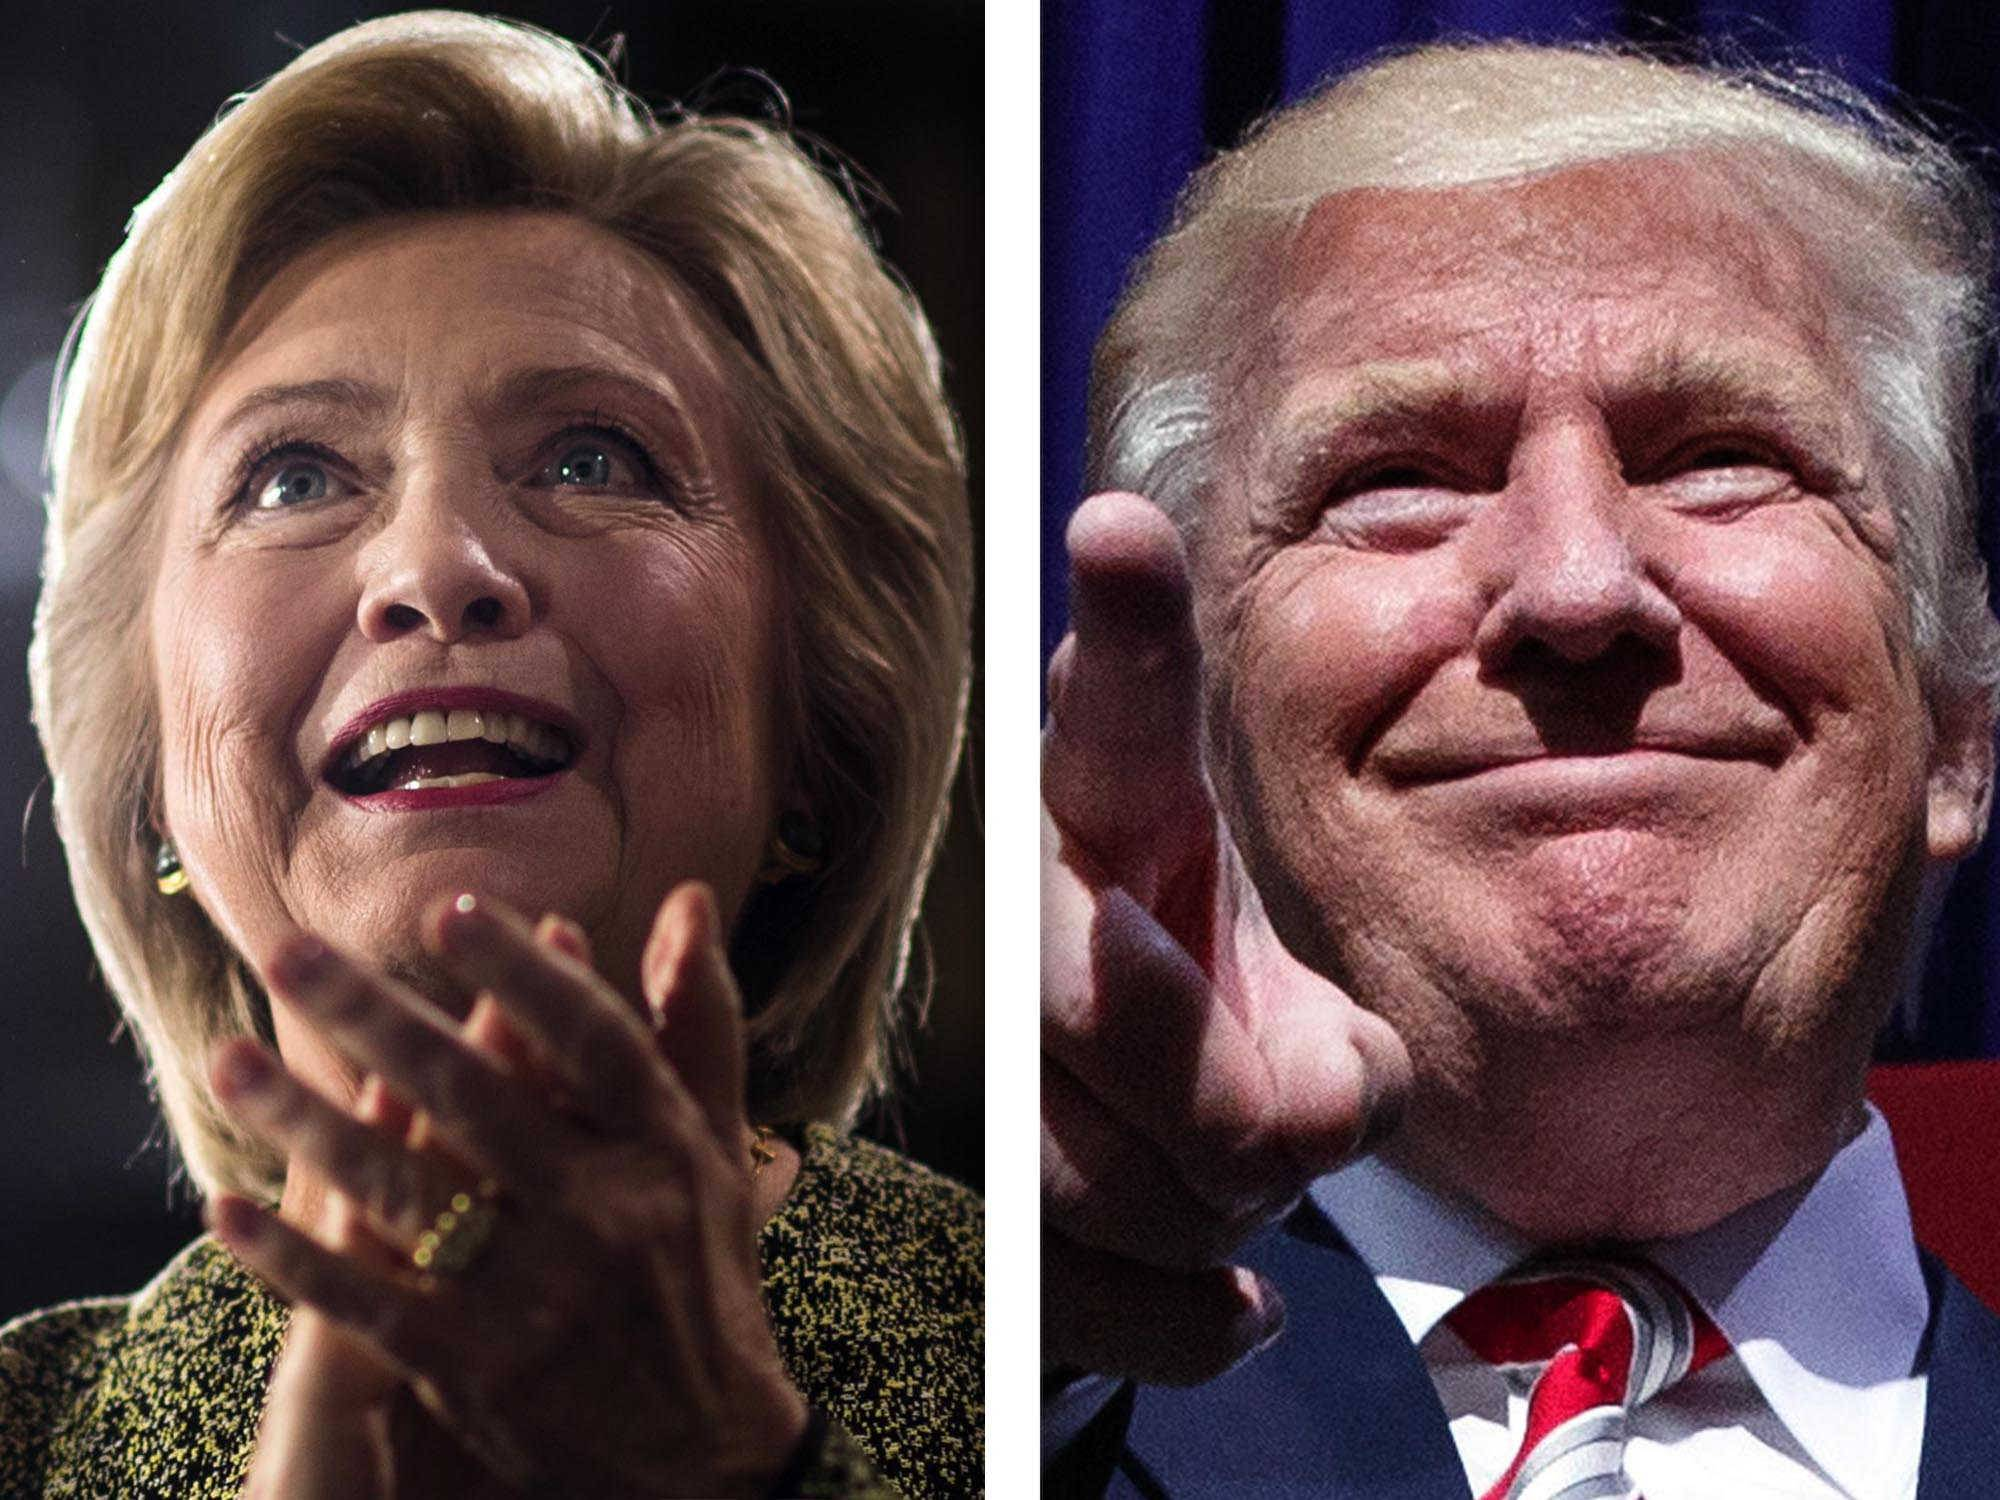 Hillary Clinton, left, and Donald Trump, right, are candidates for President of the United States. They'll debate each other Monday night for the first time.